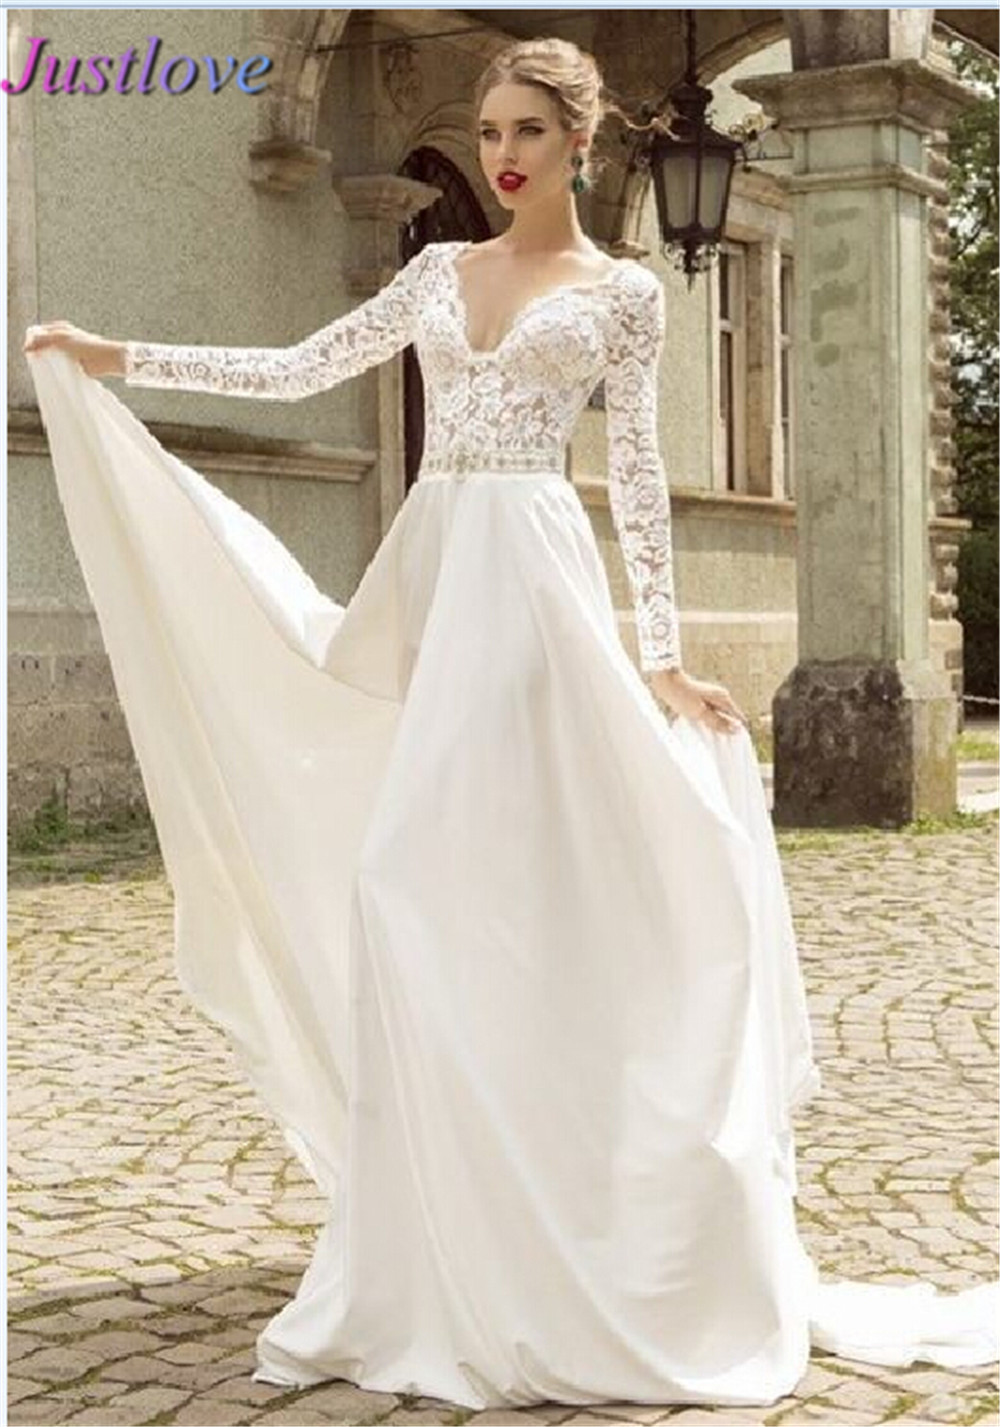 Lace Wedding Dress 2015 Women Long Sleeves Romantic V Neck ...